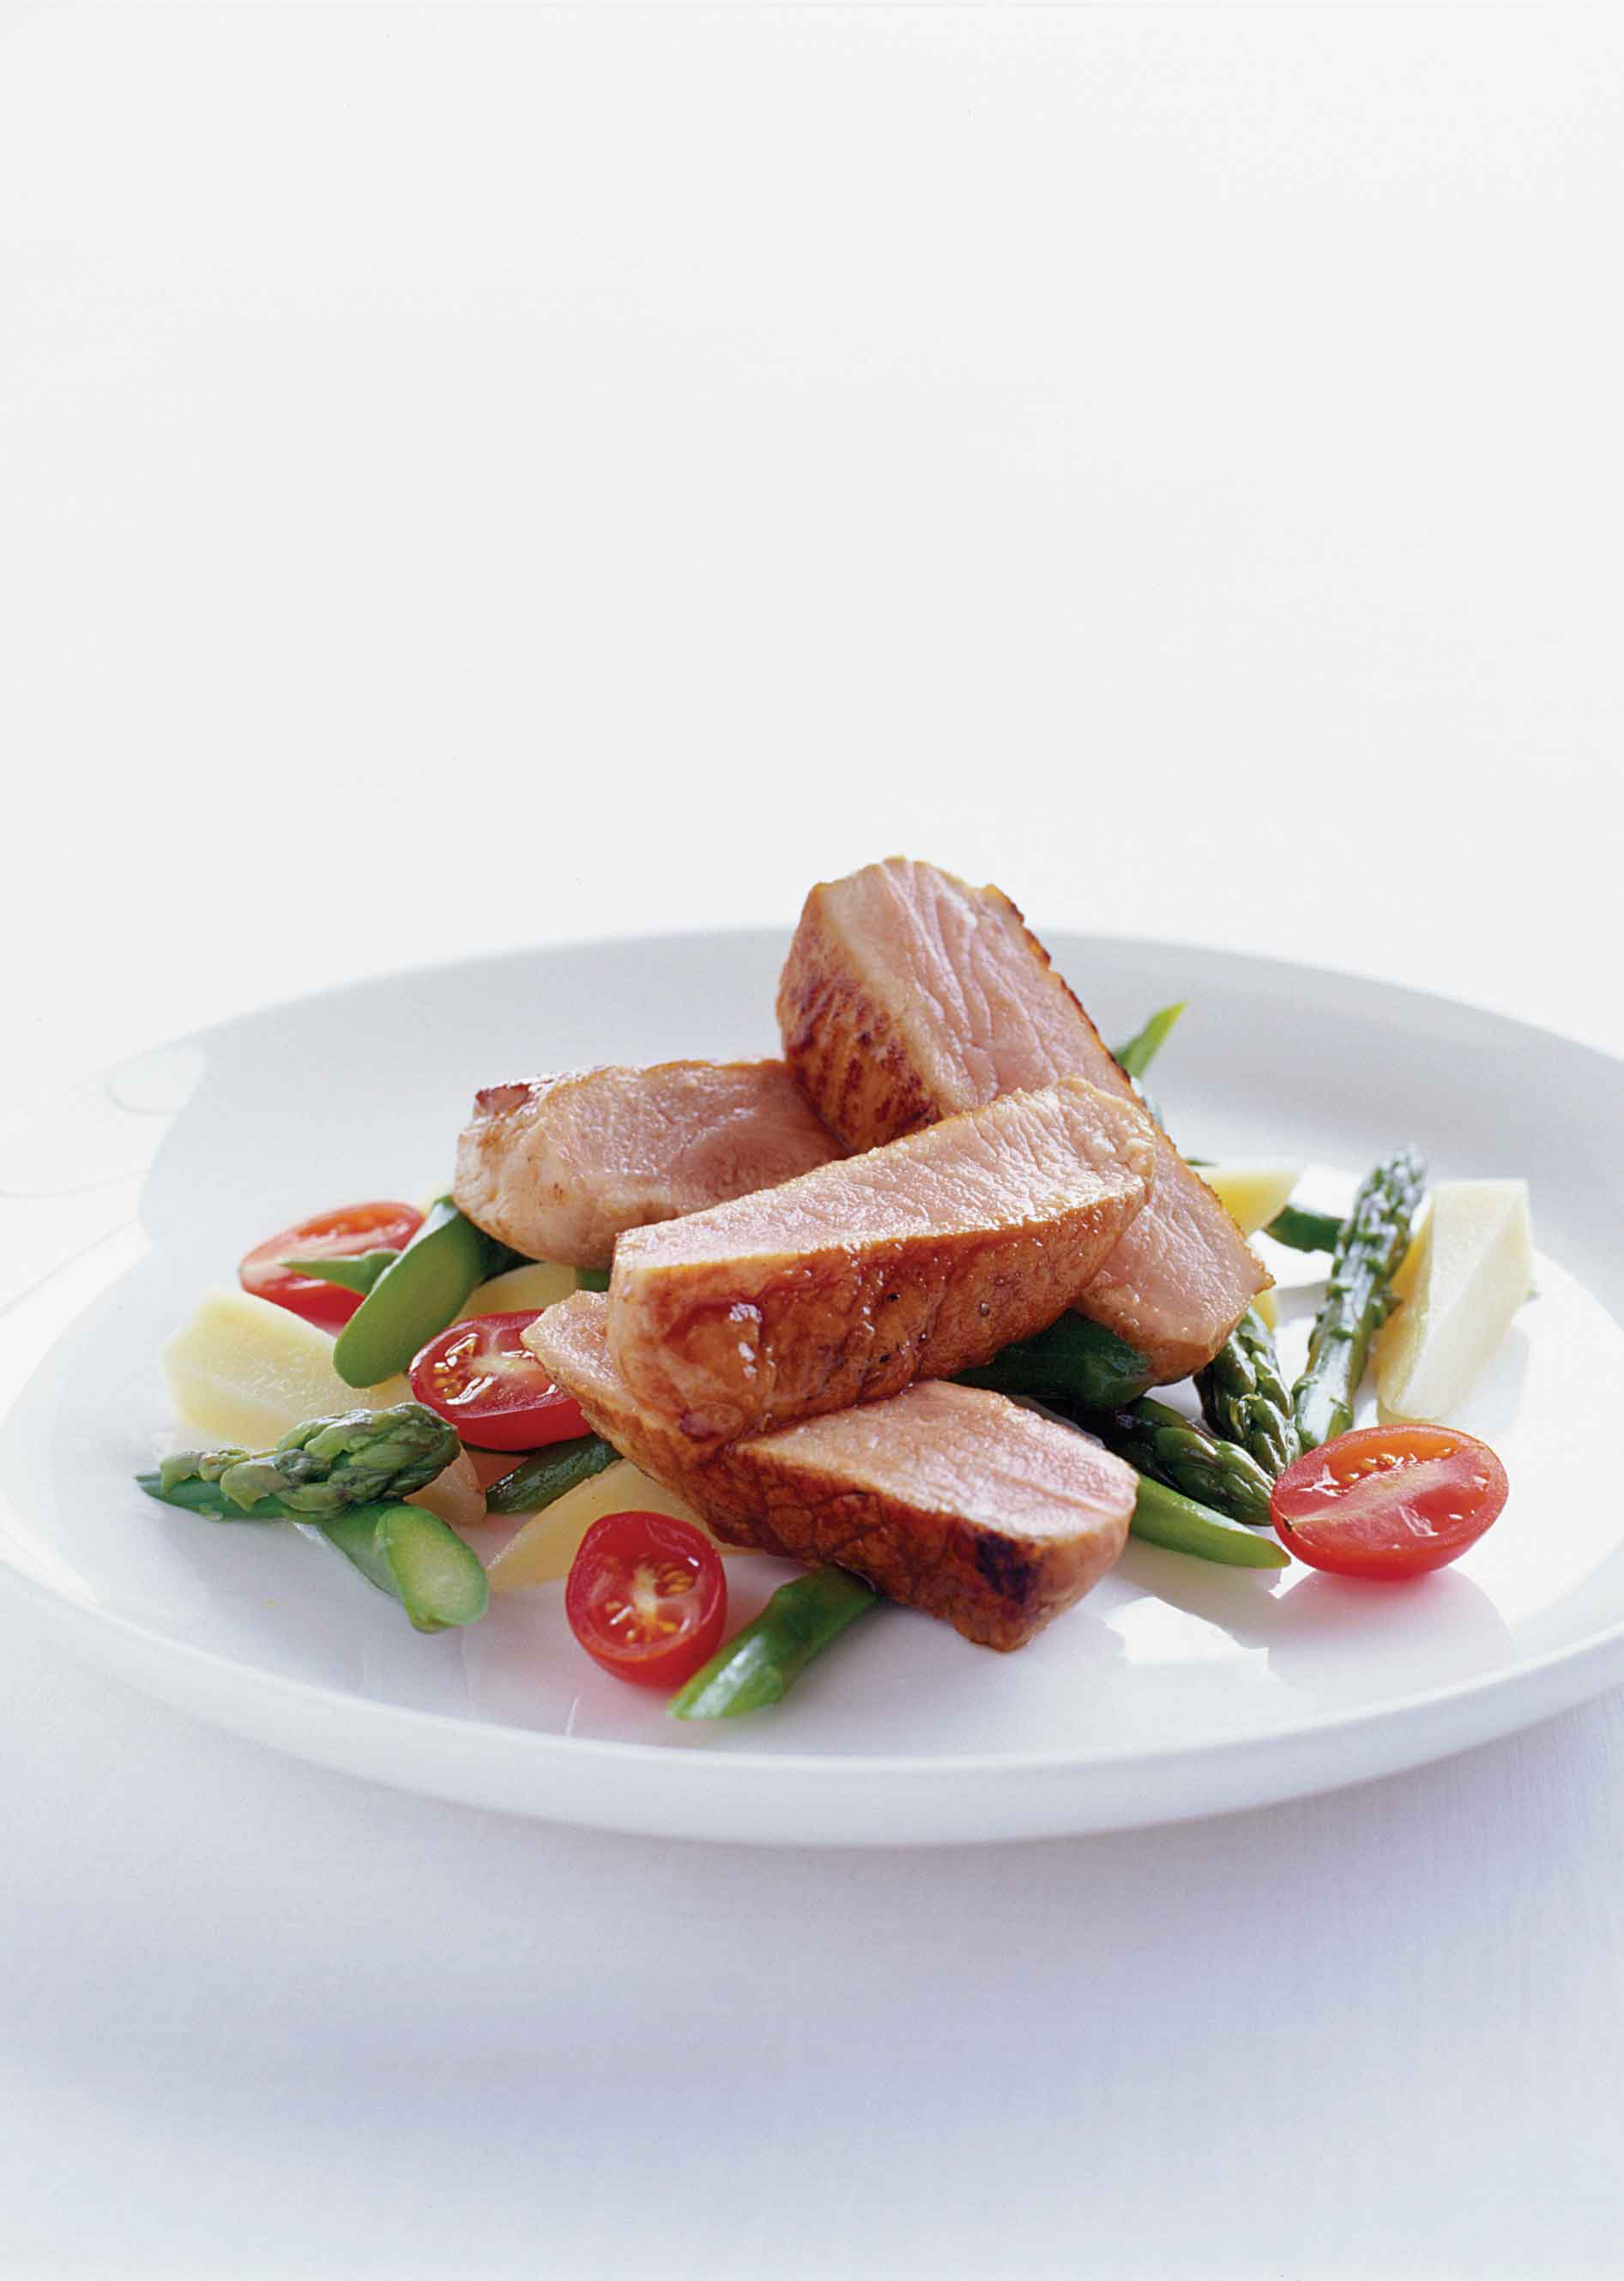 Pork-healthy-alternative